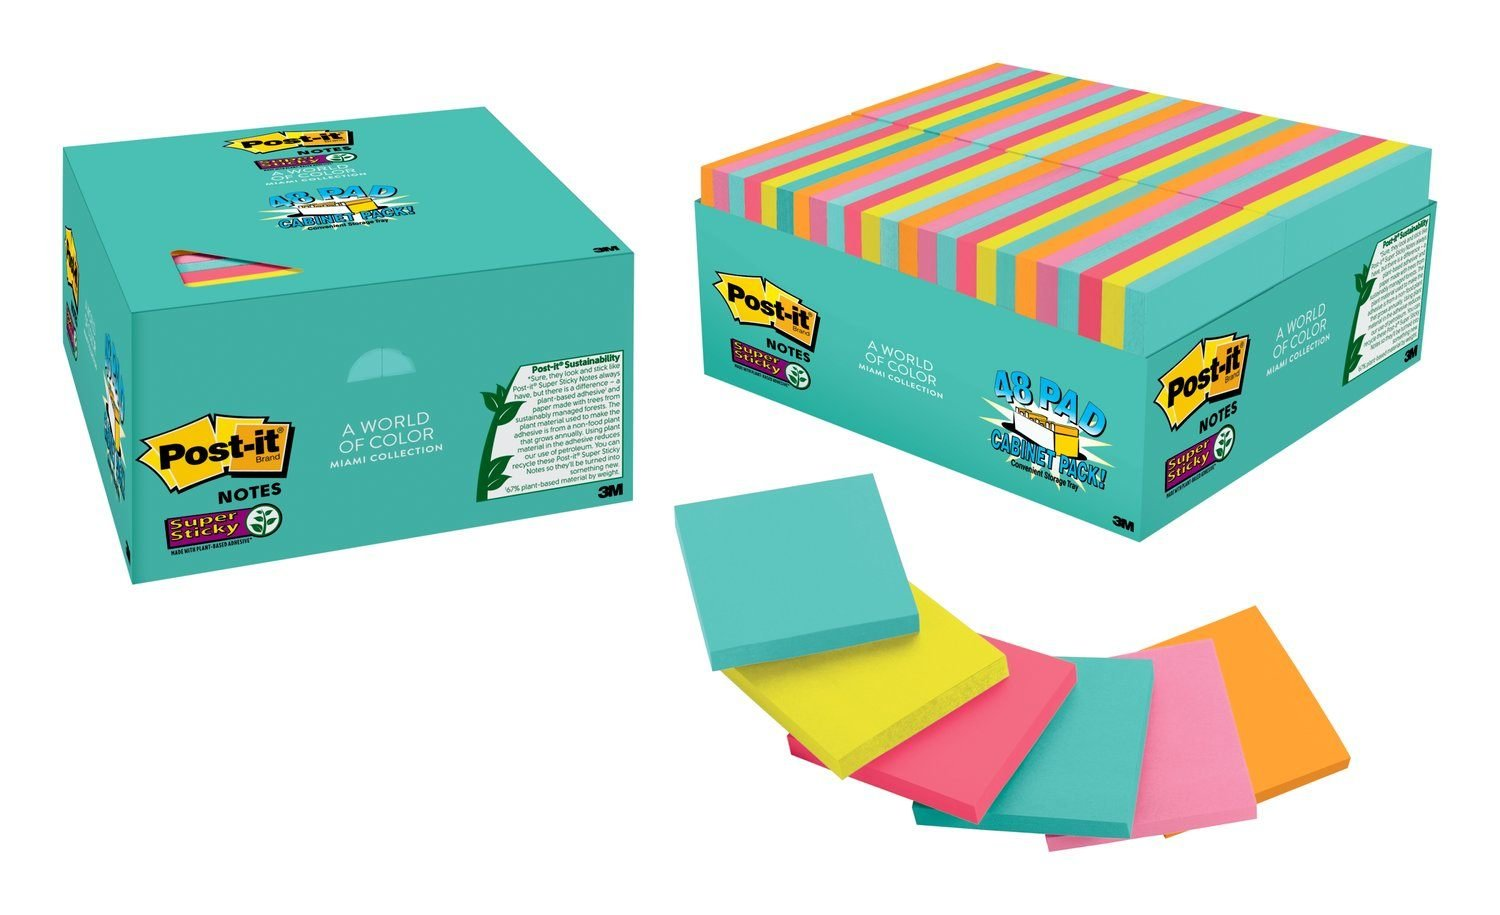 Amazon.com : Post-it Super Sticky Notes, 3 in. x 3 in, Miami ...